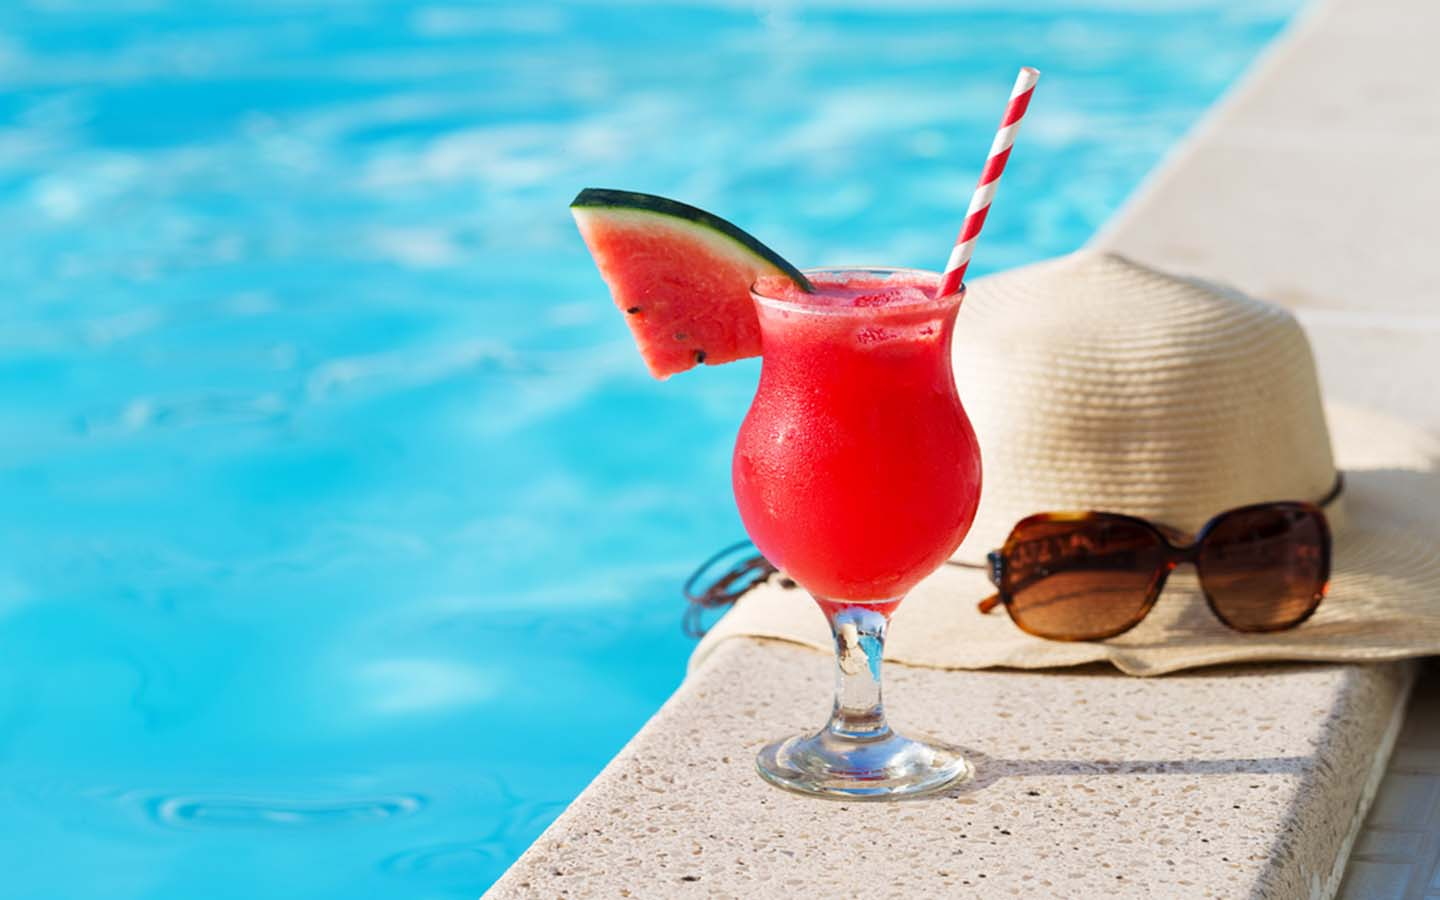 Drink by pool